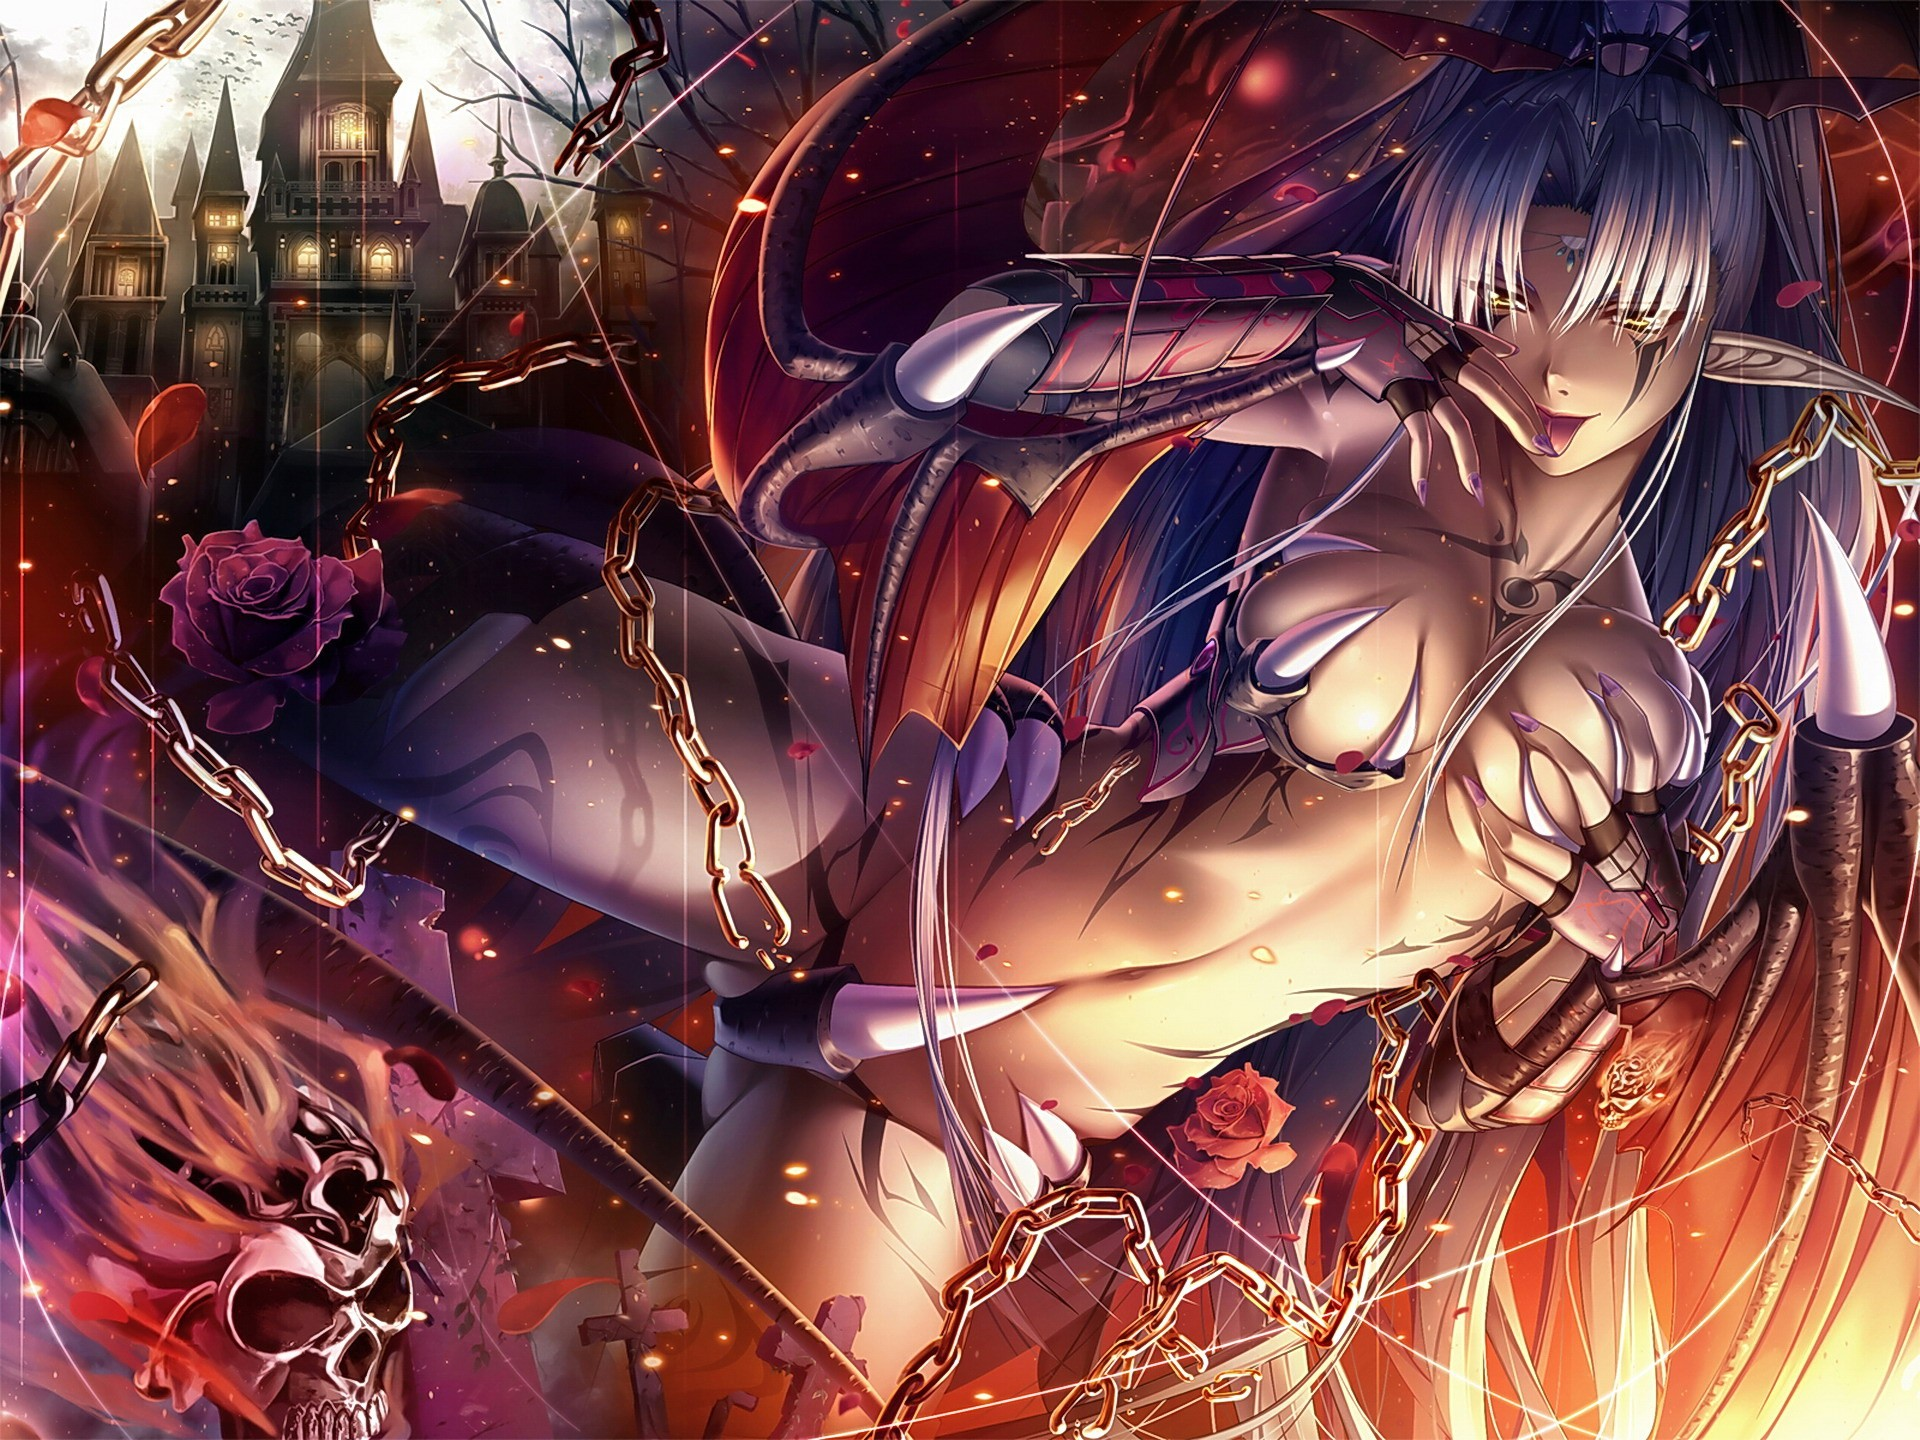 Anime woman original characters HD Wallpaper